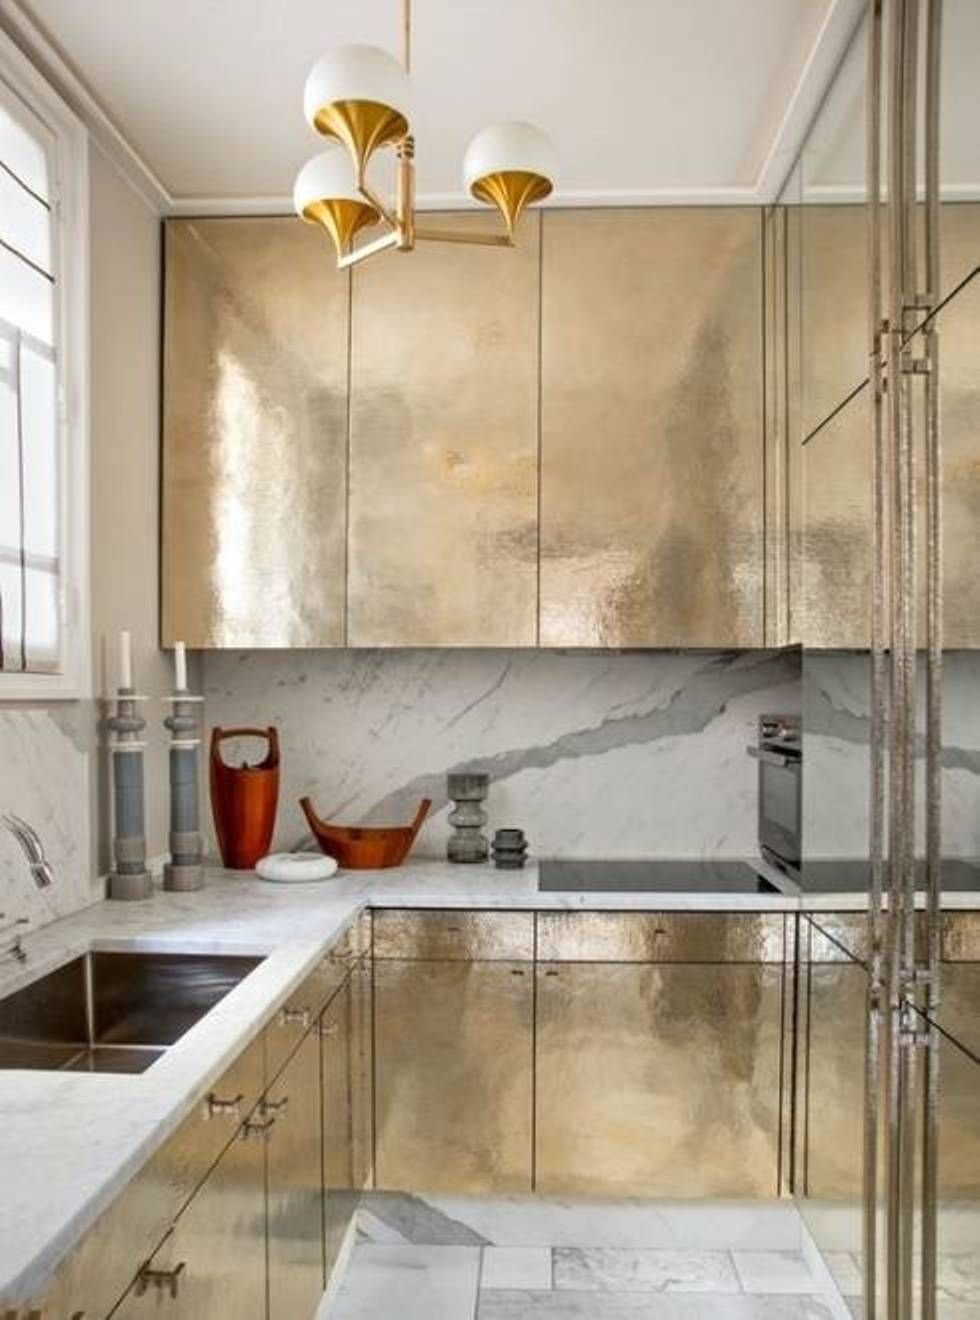 Chic Small Kitchen Design Layout In Gold And Marble Combination - Small kitchen design layouts